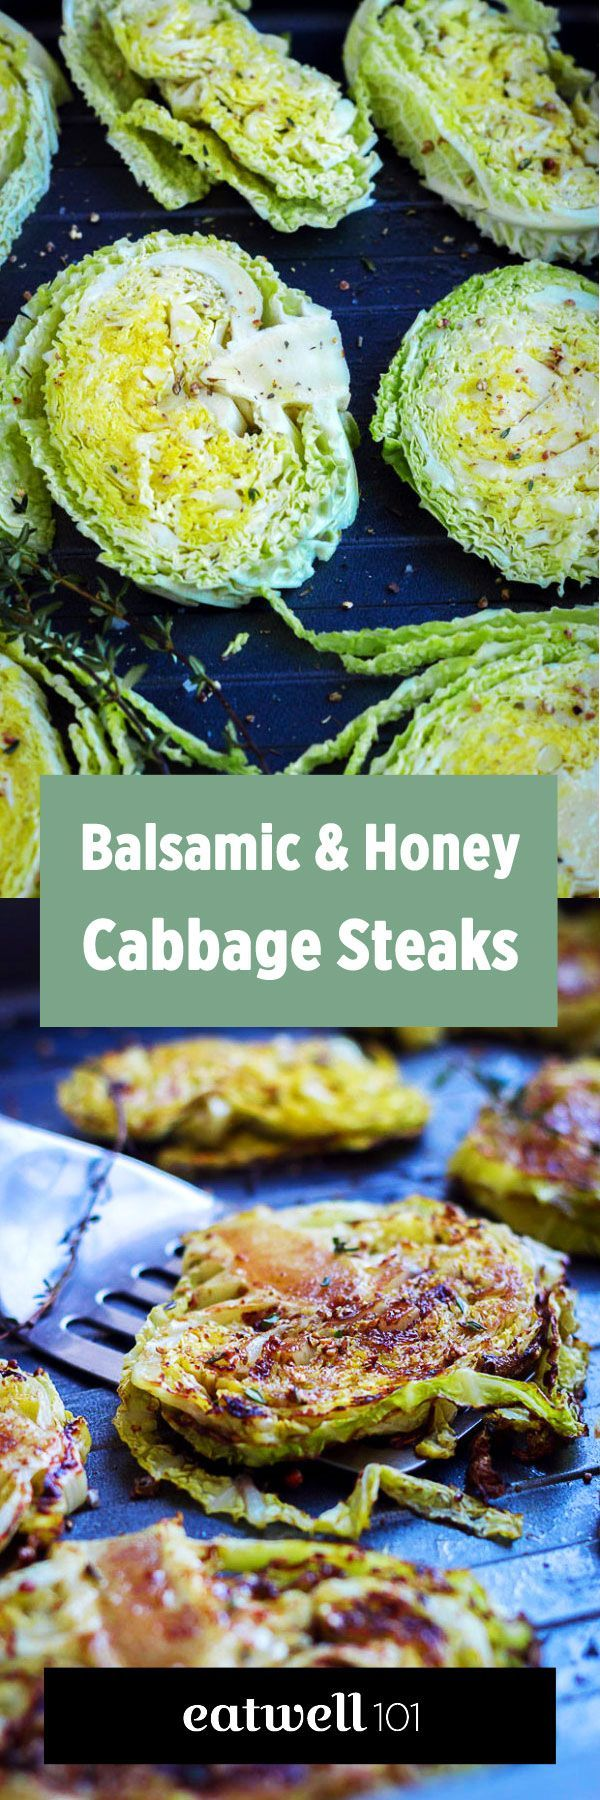 Balsamic, Honey Roasted Cabbage Steaks